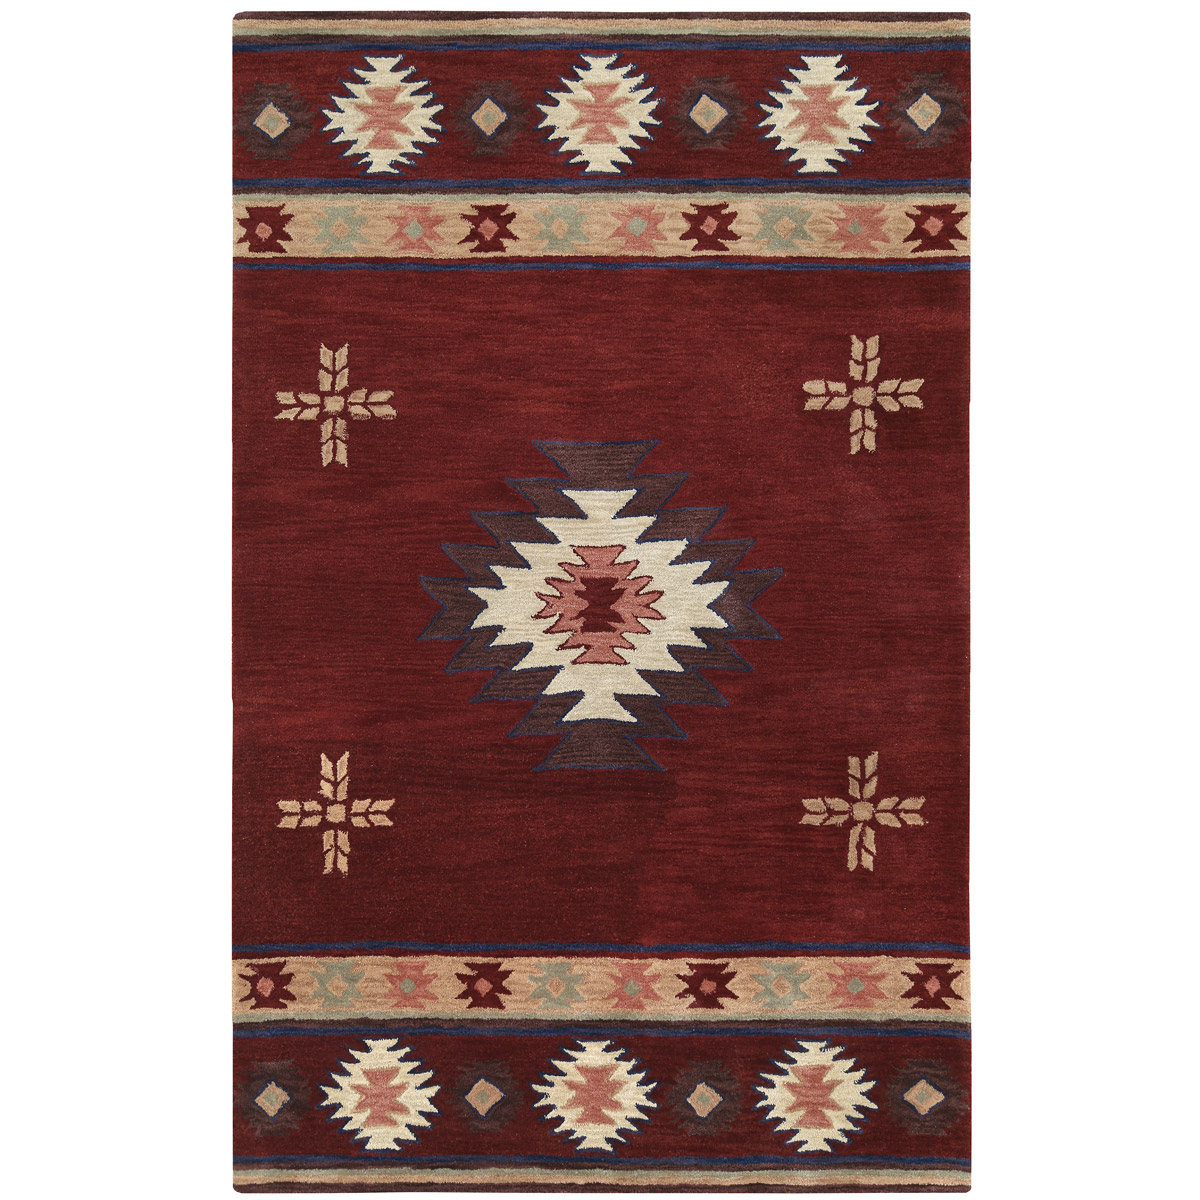 Southwest Burgundy Rug - 3 x 5